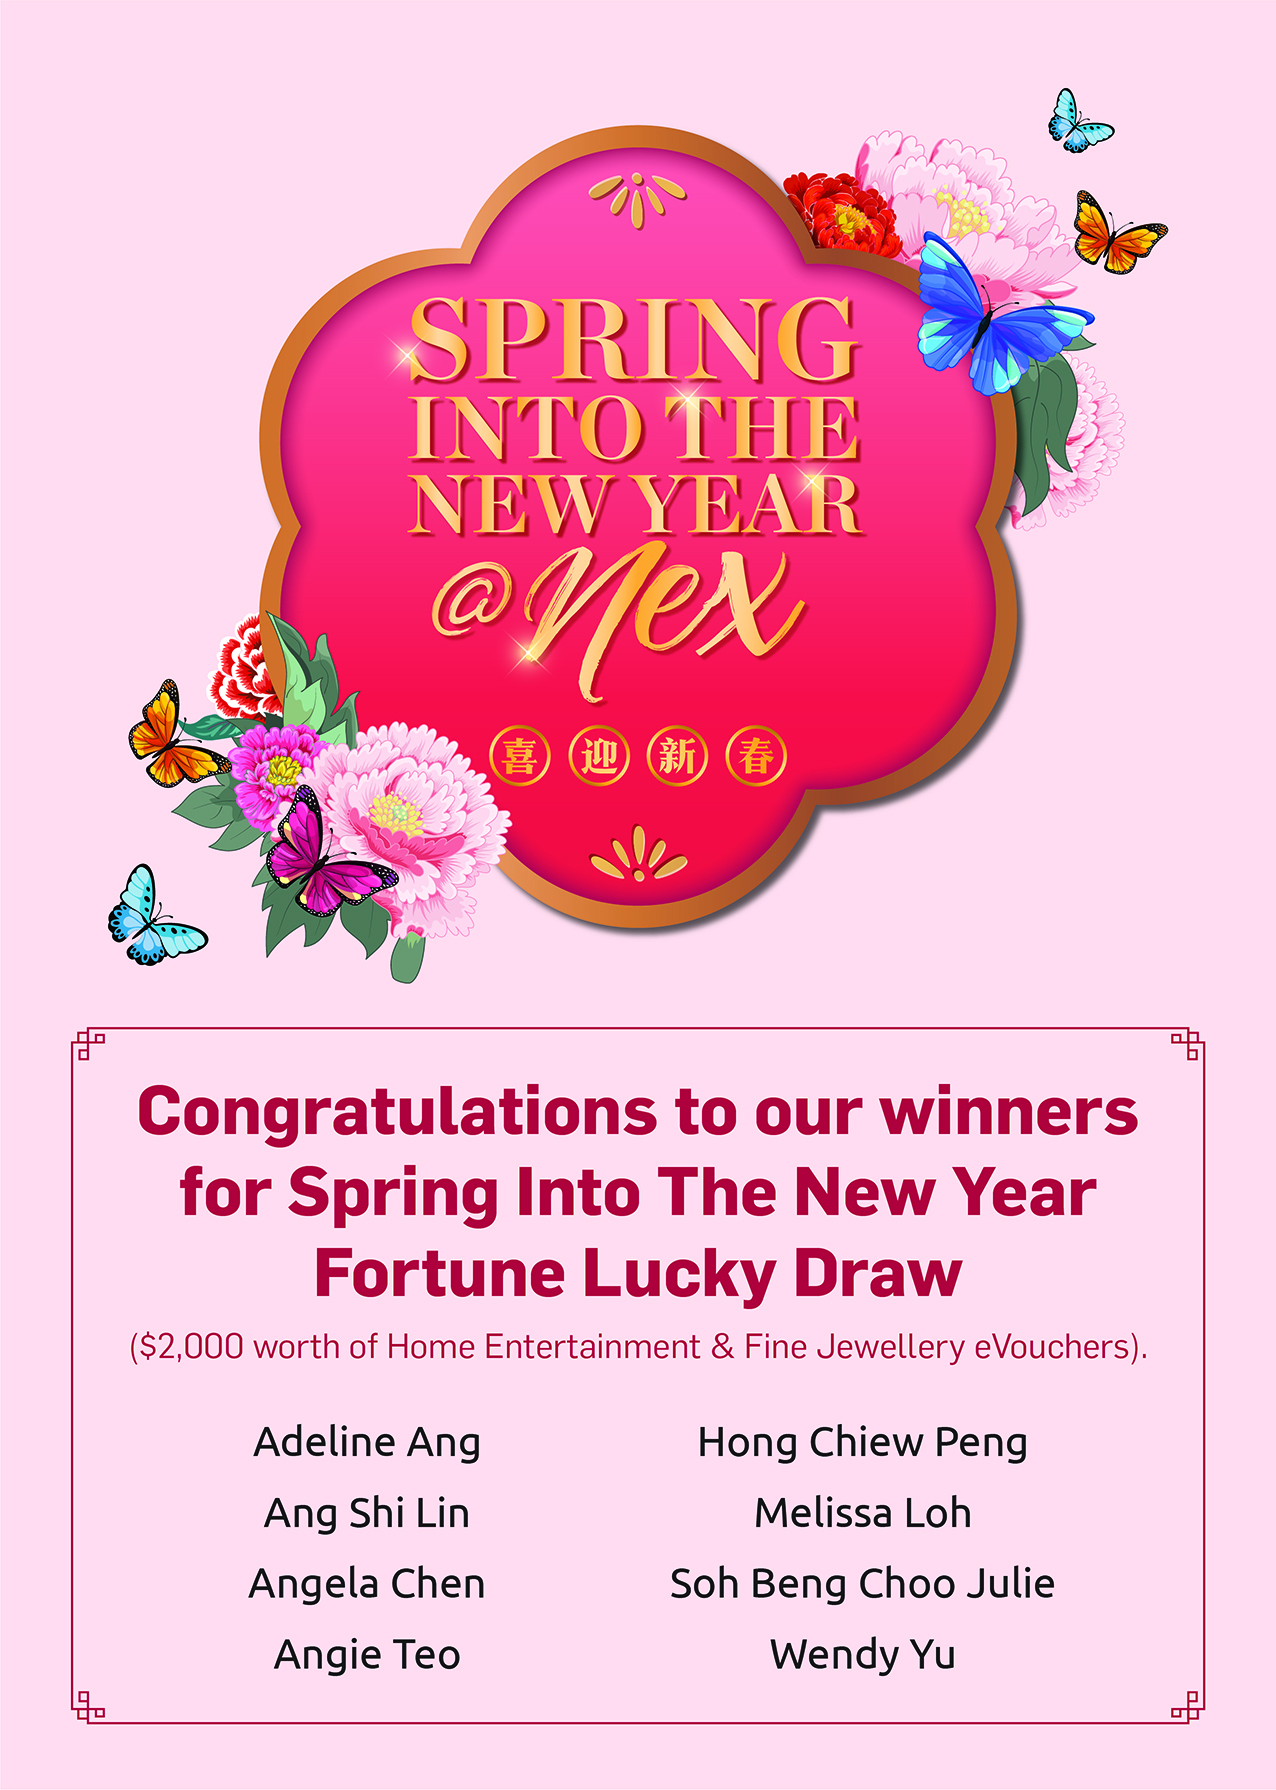 5258NEX_Lunar New Year 2021 Campaign_Lucky Draw Poster_FA